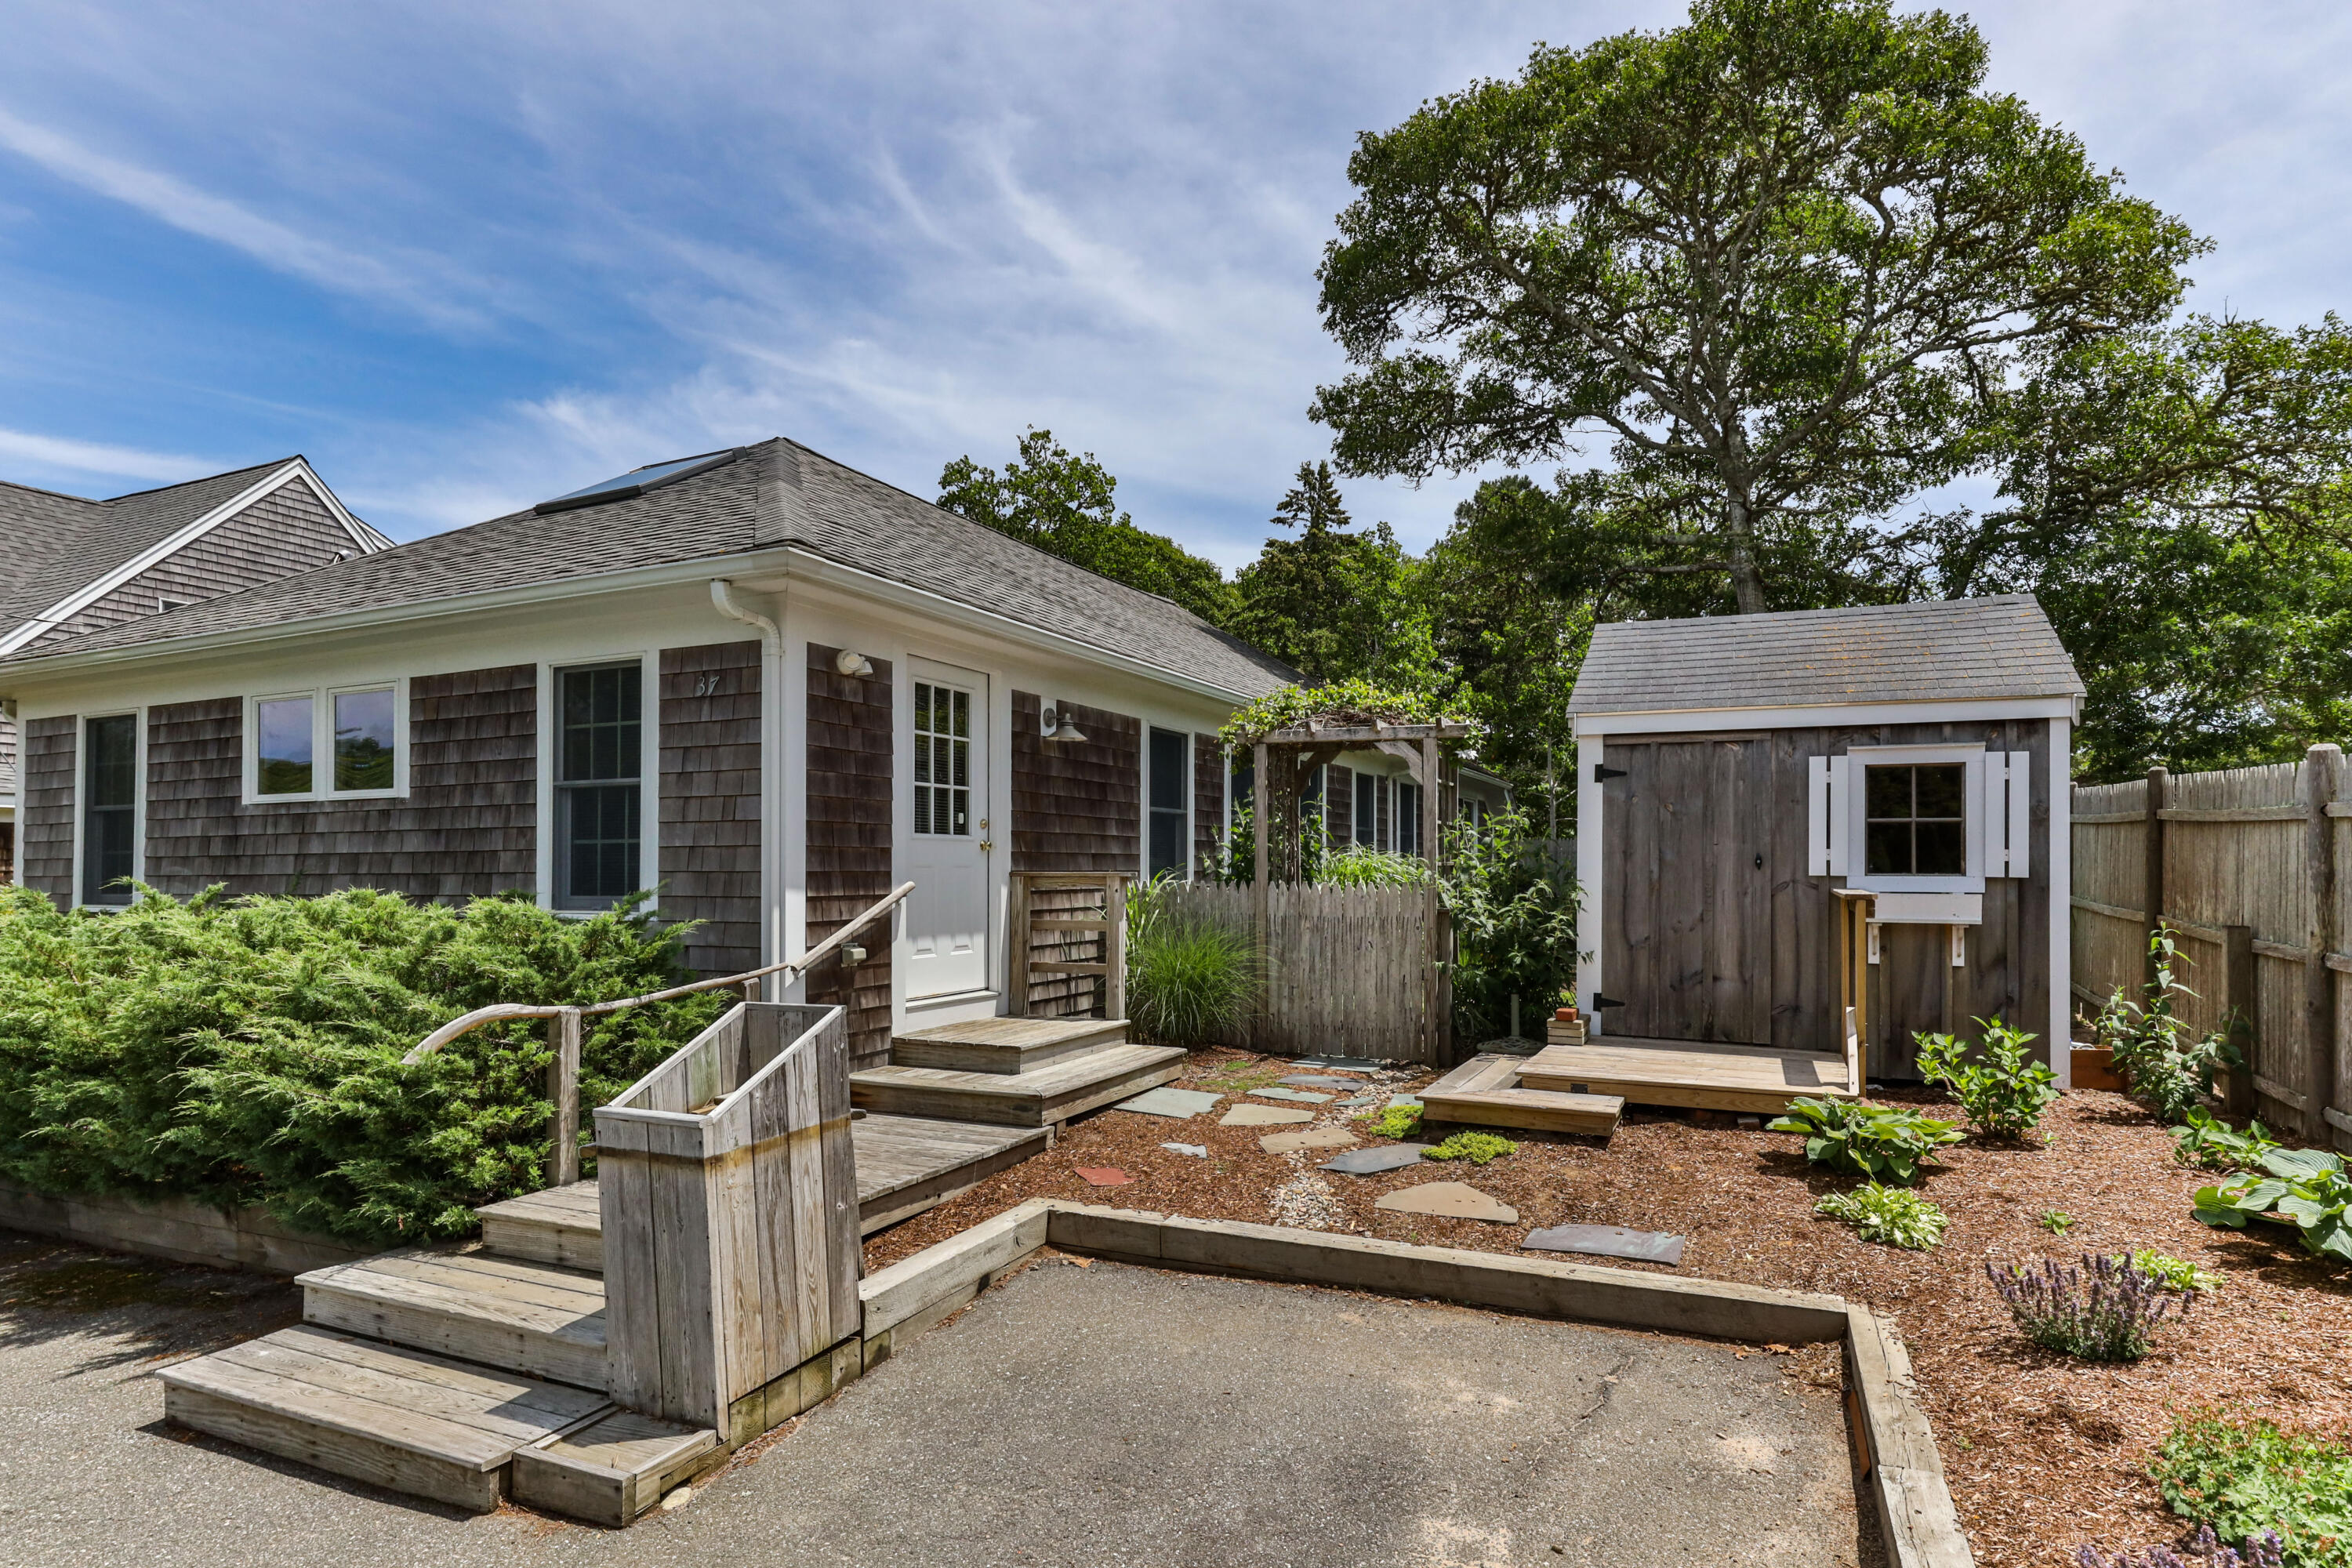 37 Old County Road, Harwich, MA details